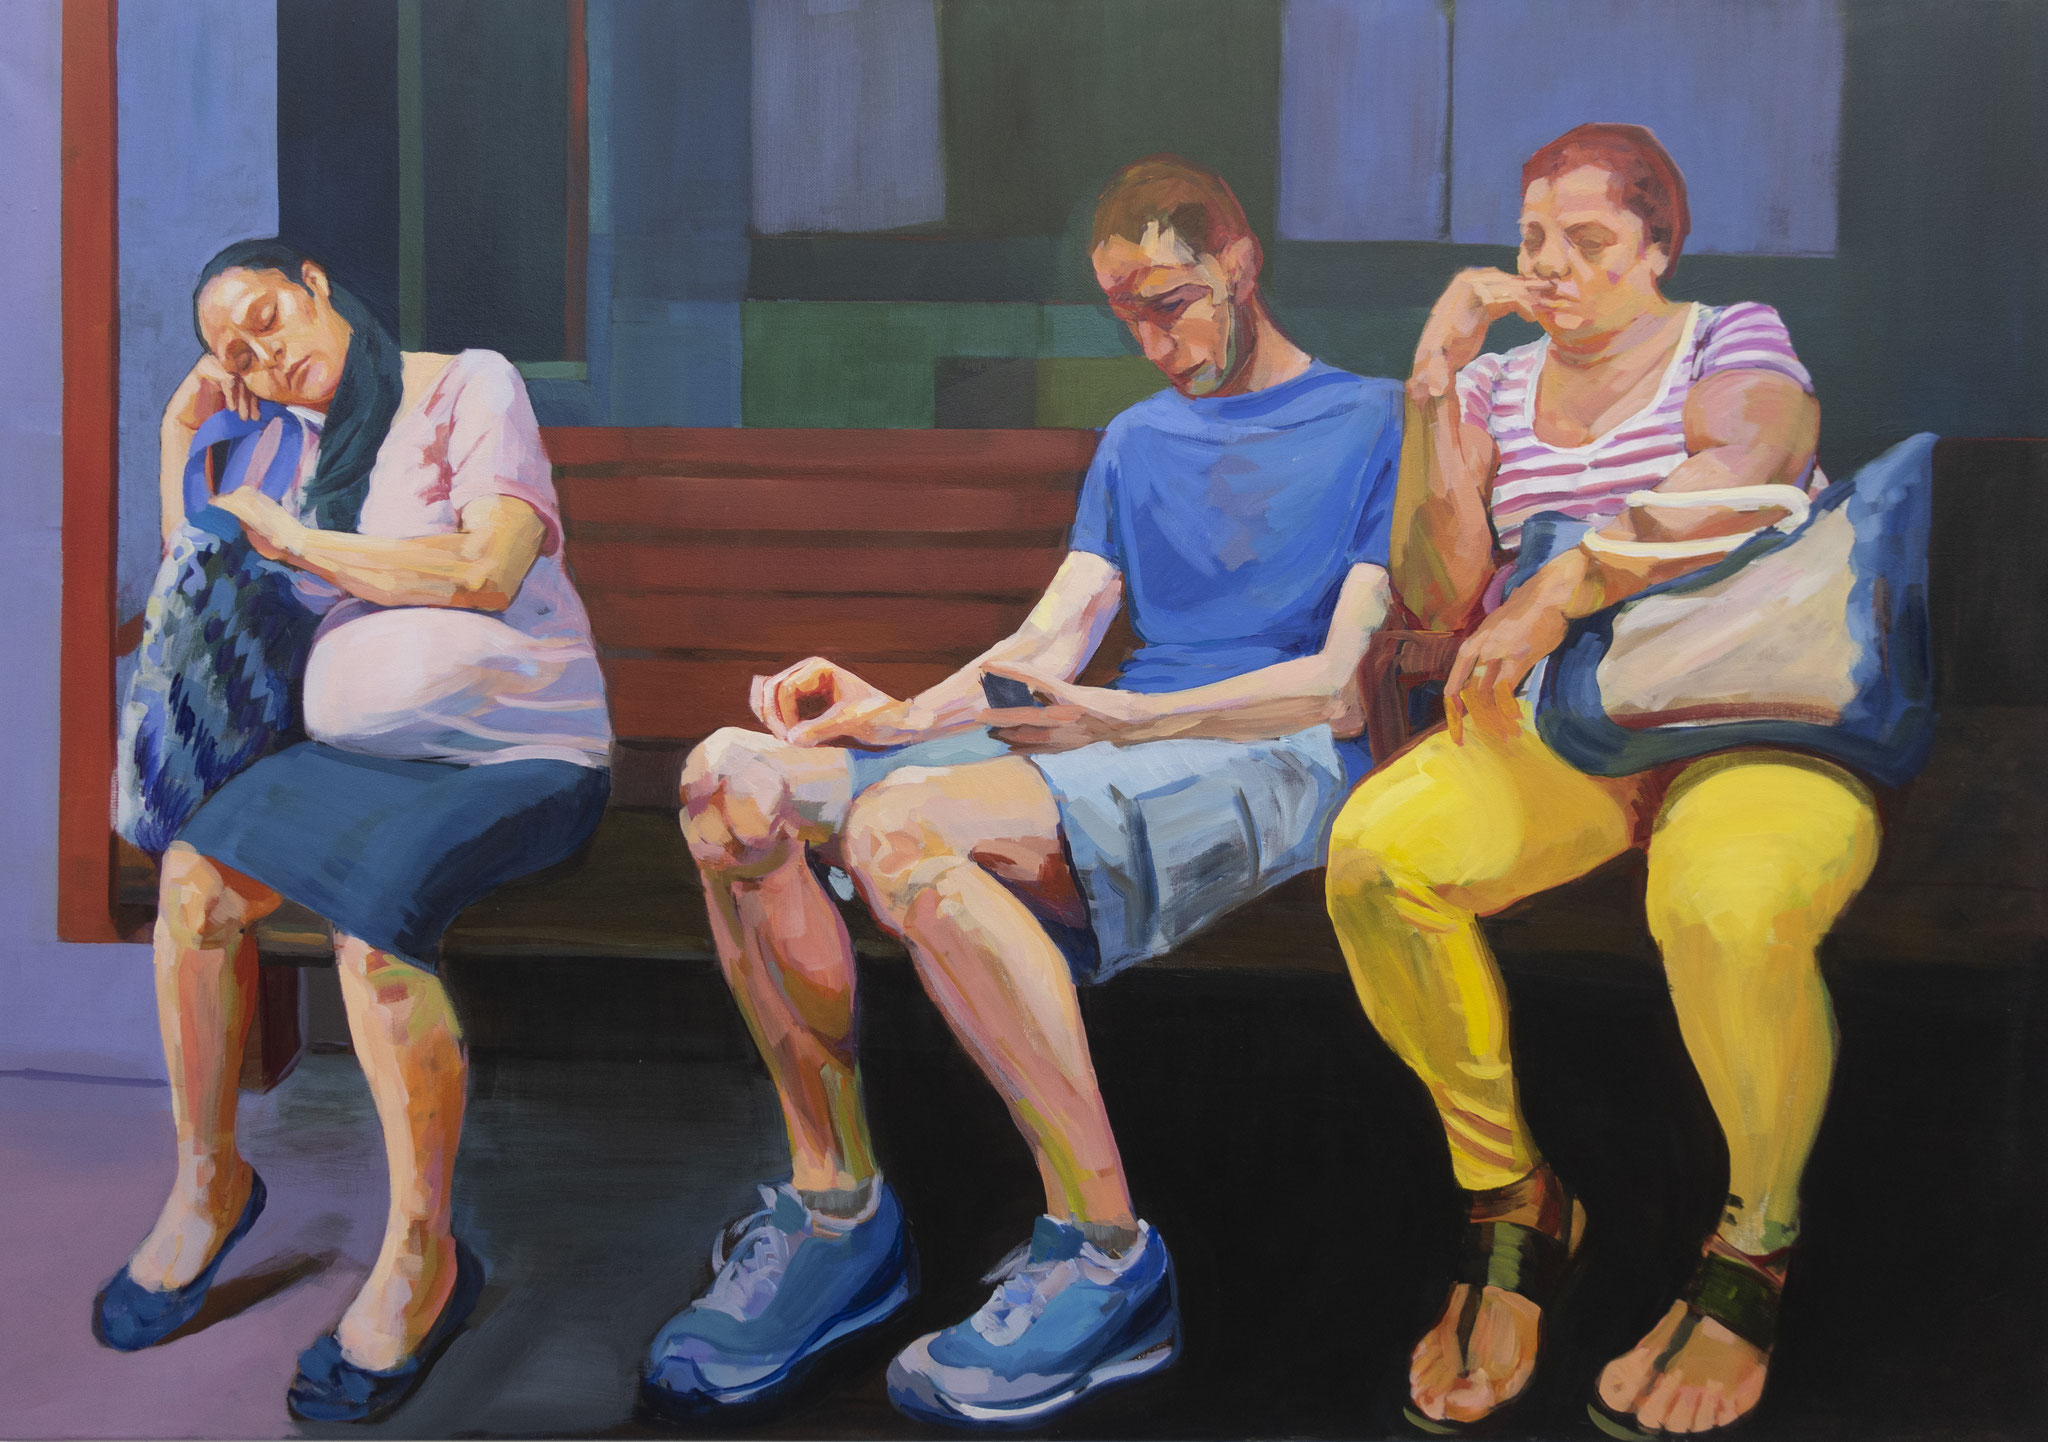 The end of the day, 81 x 116 cm.